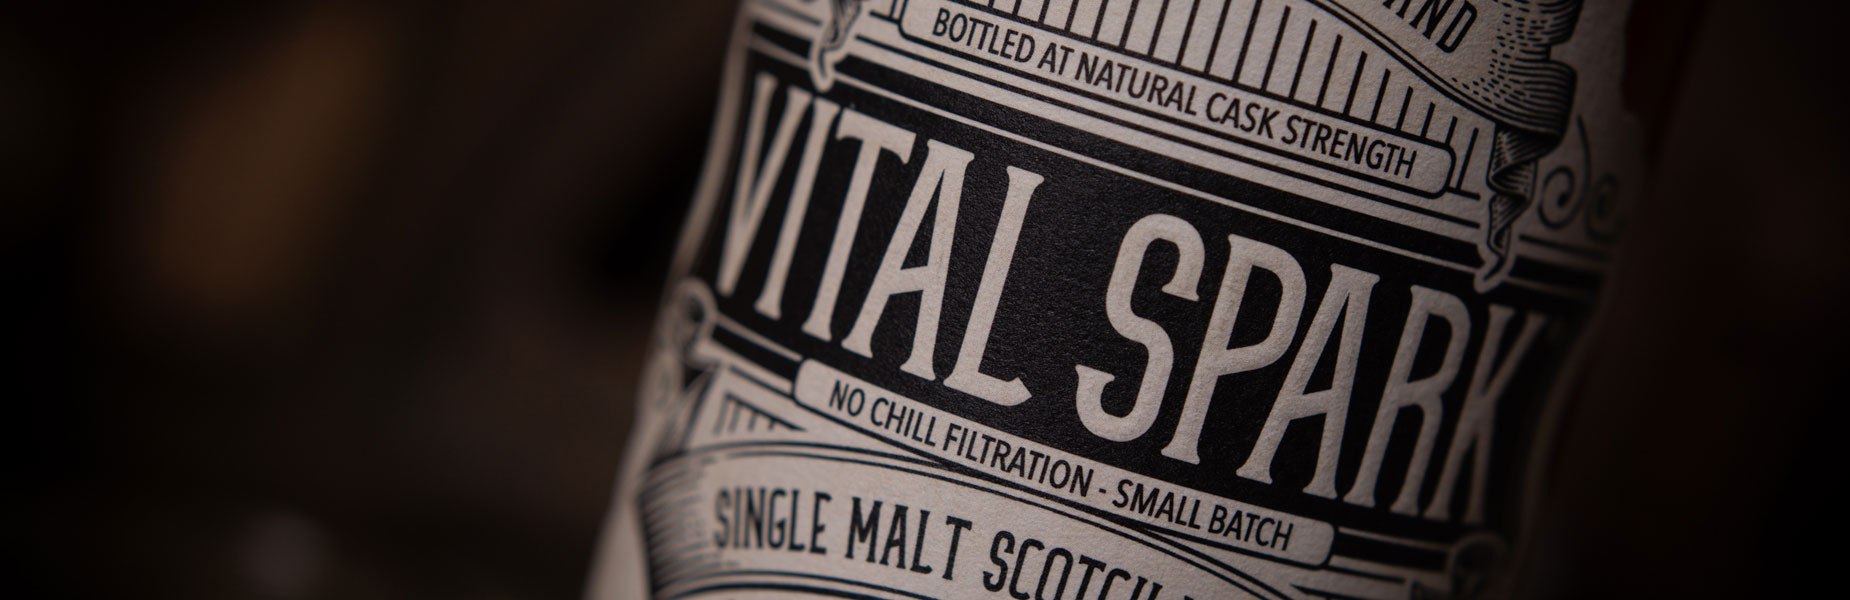 Vital Spark Single Malt Whisky